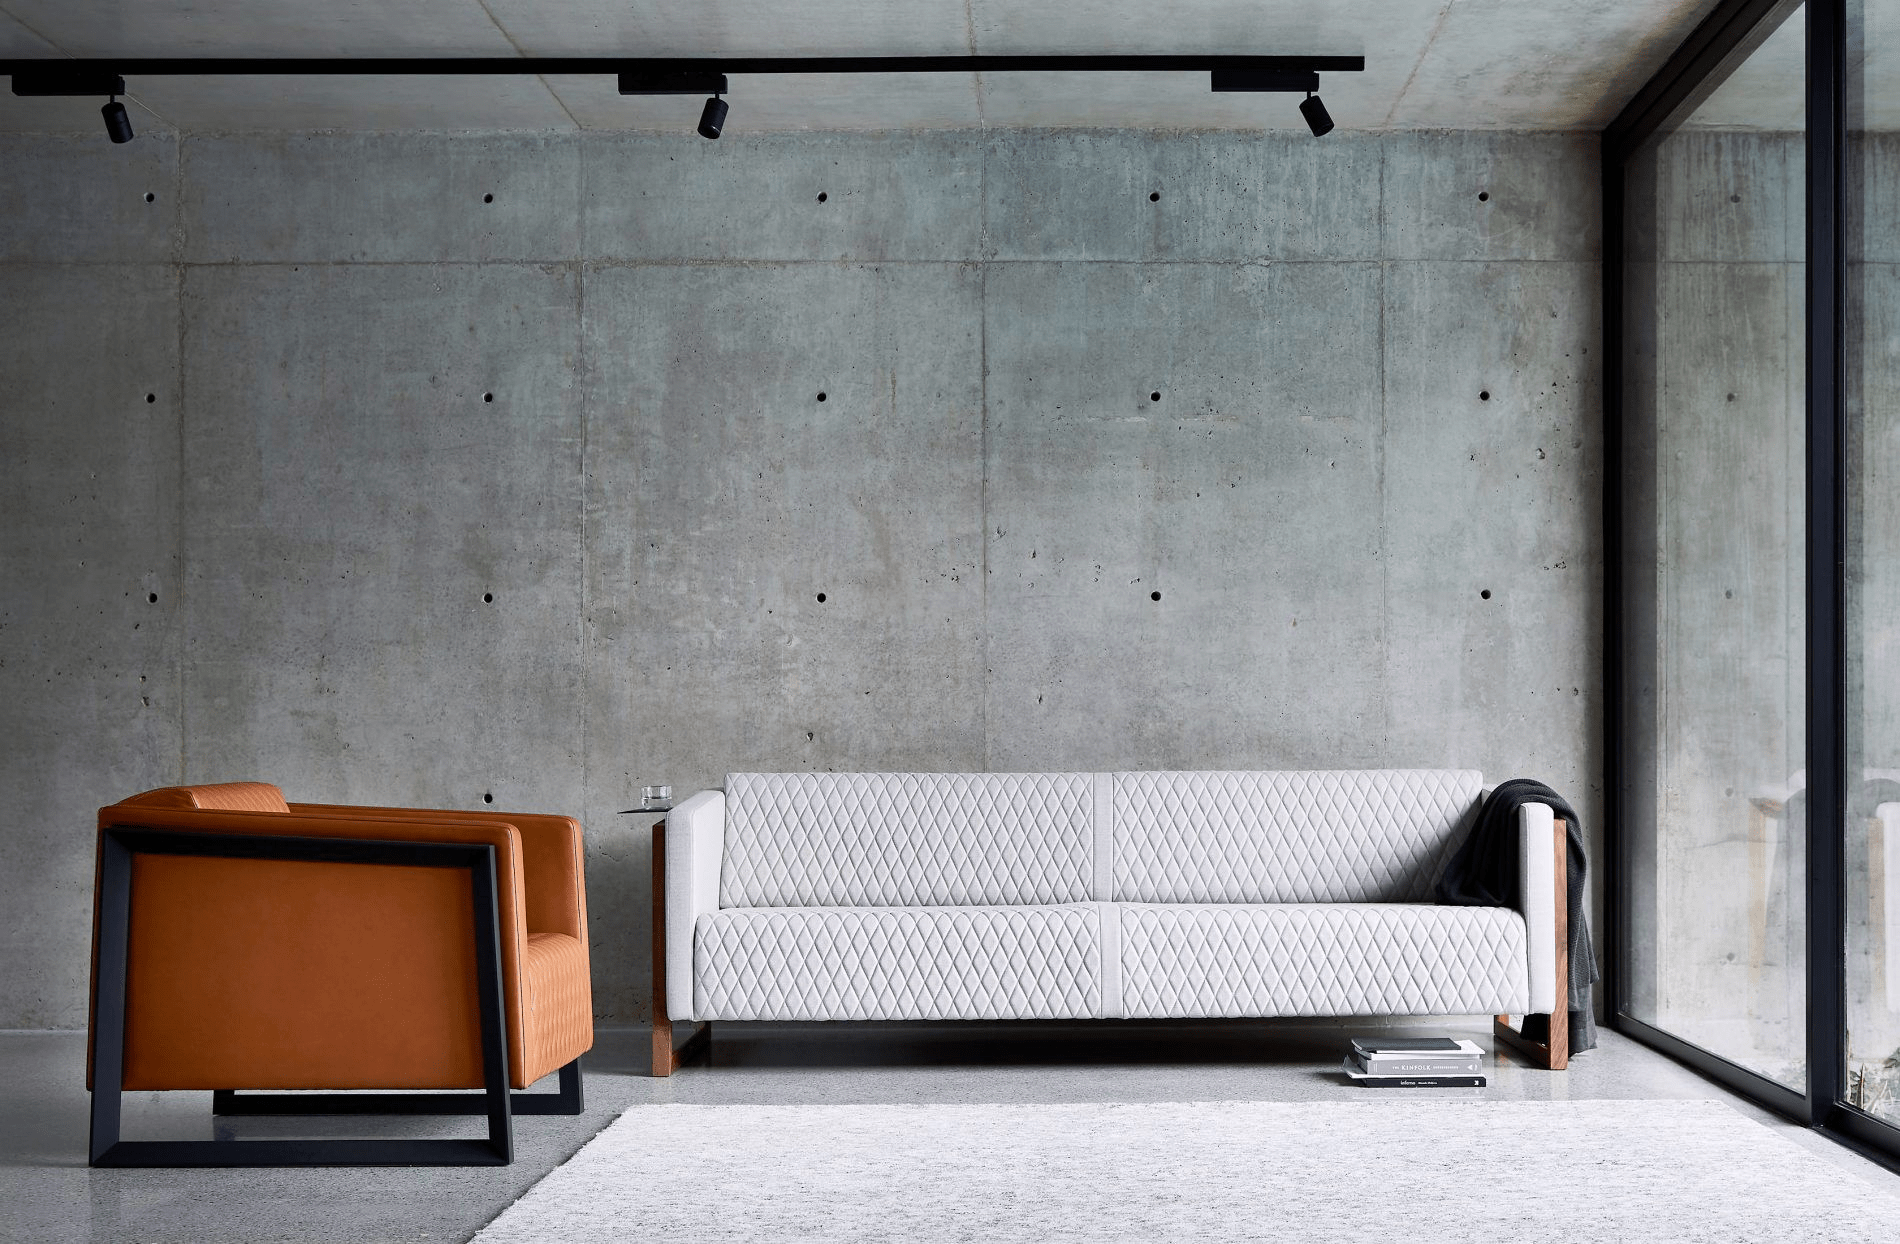 Gallery Of Mena Sofa By Franco Crea Local Australian Furniture Designer & Maker Richmond, Melbourne Image 2